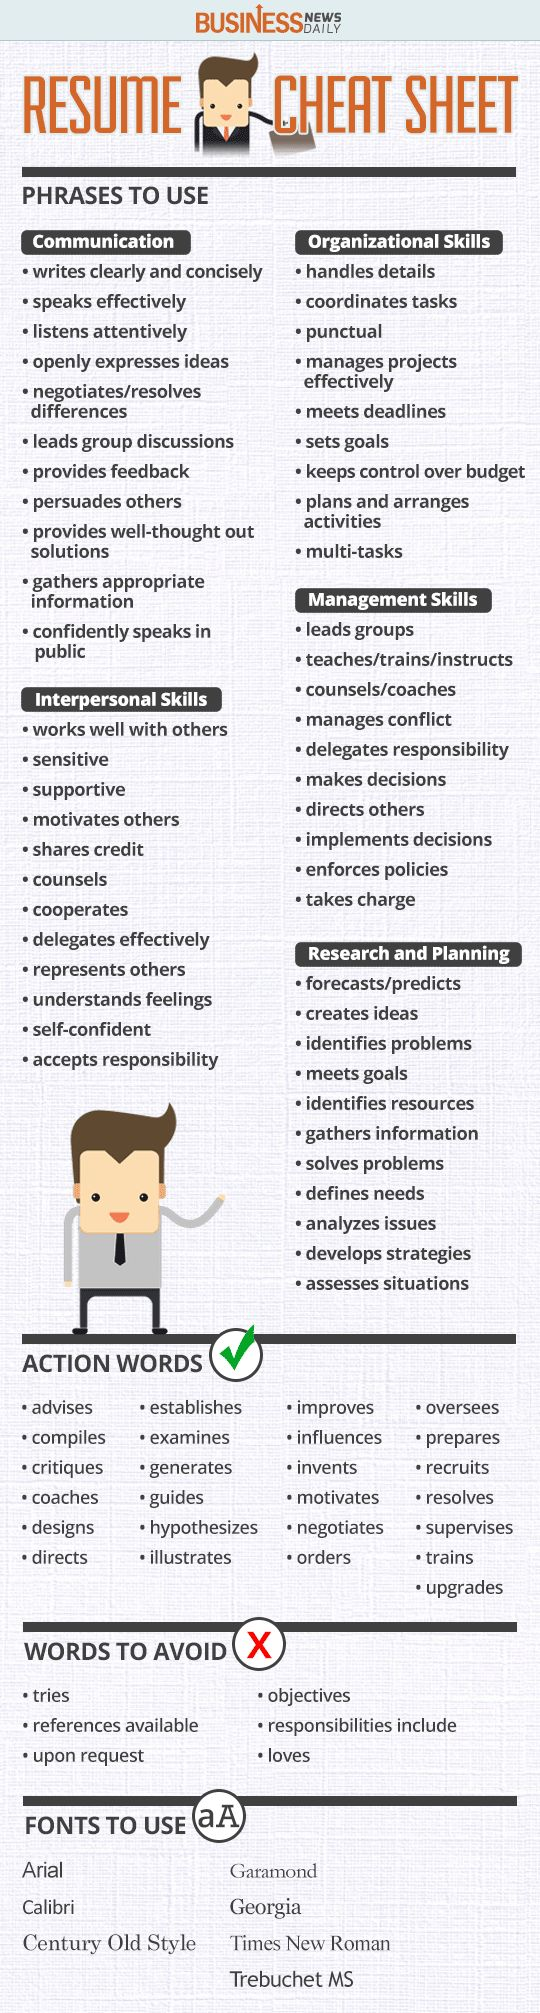 Opposenewapstandardsus  Inspiring  Ideas About Resume On Pinterest  Cv Format Resume  With Great Resume Cheat Sheet Infographic Andrews Almost Done With A Complete Unit On Employment Which With Astonishing Example Teacher Resume Also How Do I Create A Resume In Addition Good Looking Resume And Skills On Resume Examples As Well As Chemical Engineering Resume Additionally Healthcare Resume Template From Pinterestcom With Opposenewapstandardsus  Great  Ideas About Resume On Pinterest  Cv Format Resume  With Astonishing Resume Cheat Sheet Infographic Andrews Almost Done With A Complete Unit On Employment Which And Inspiring Example Teacher Resume Also How Do I Create A Resume In Addition Good Looking Resume From Pinterestcom